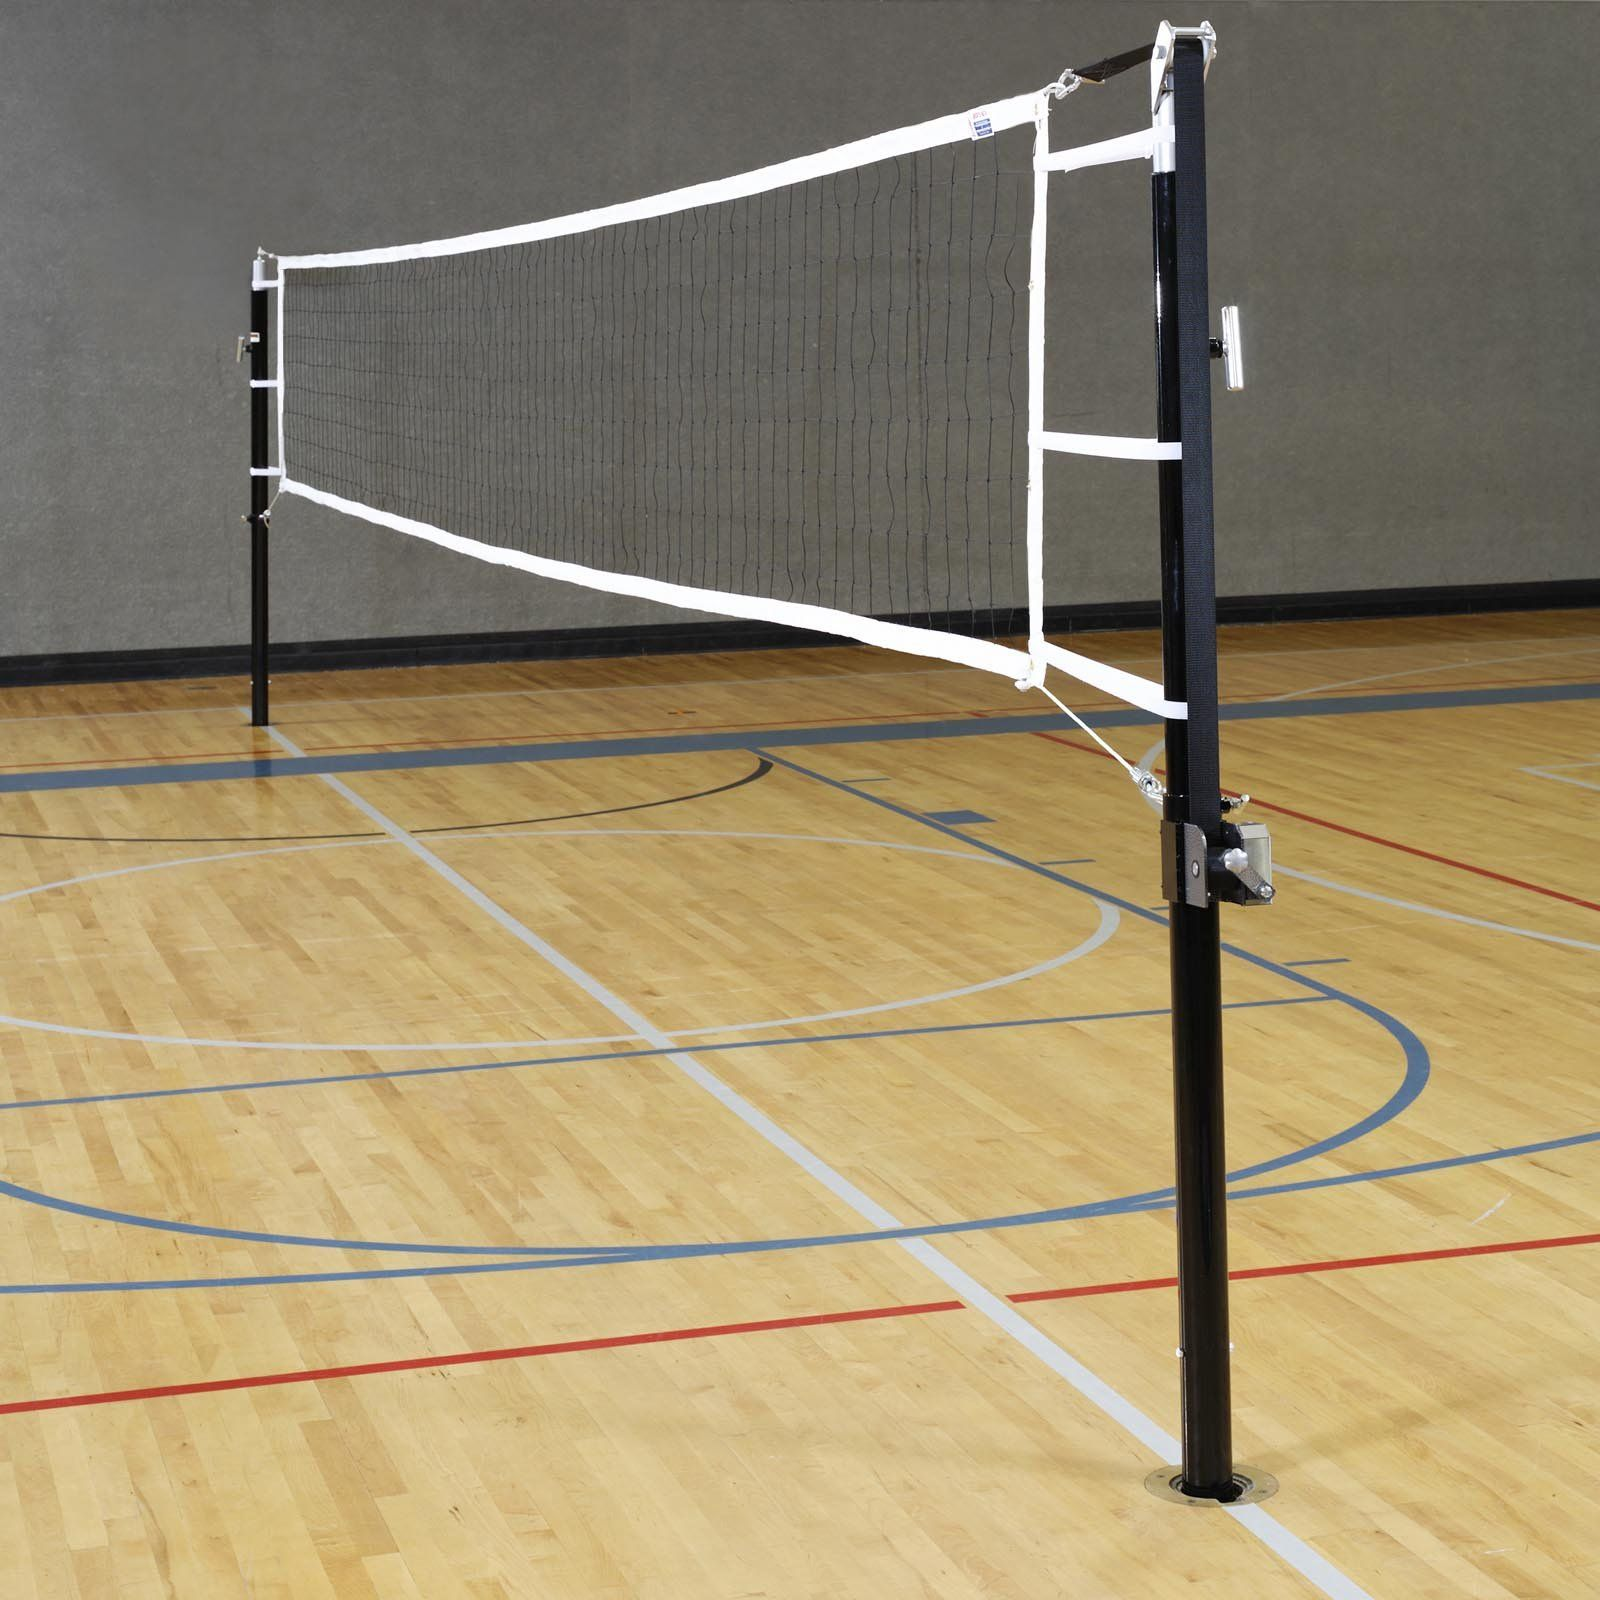 indoor volleyball net - portable one, so we can take it to the beach ...